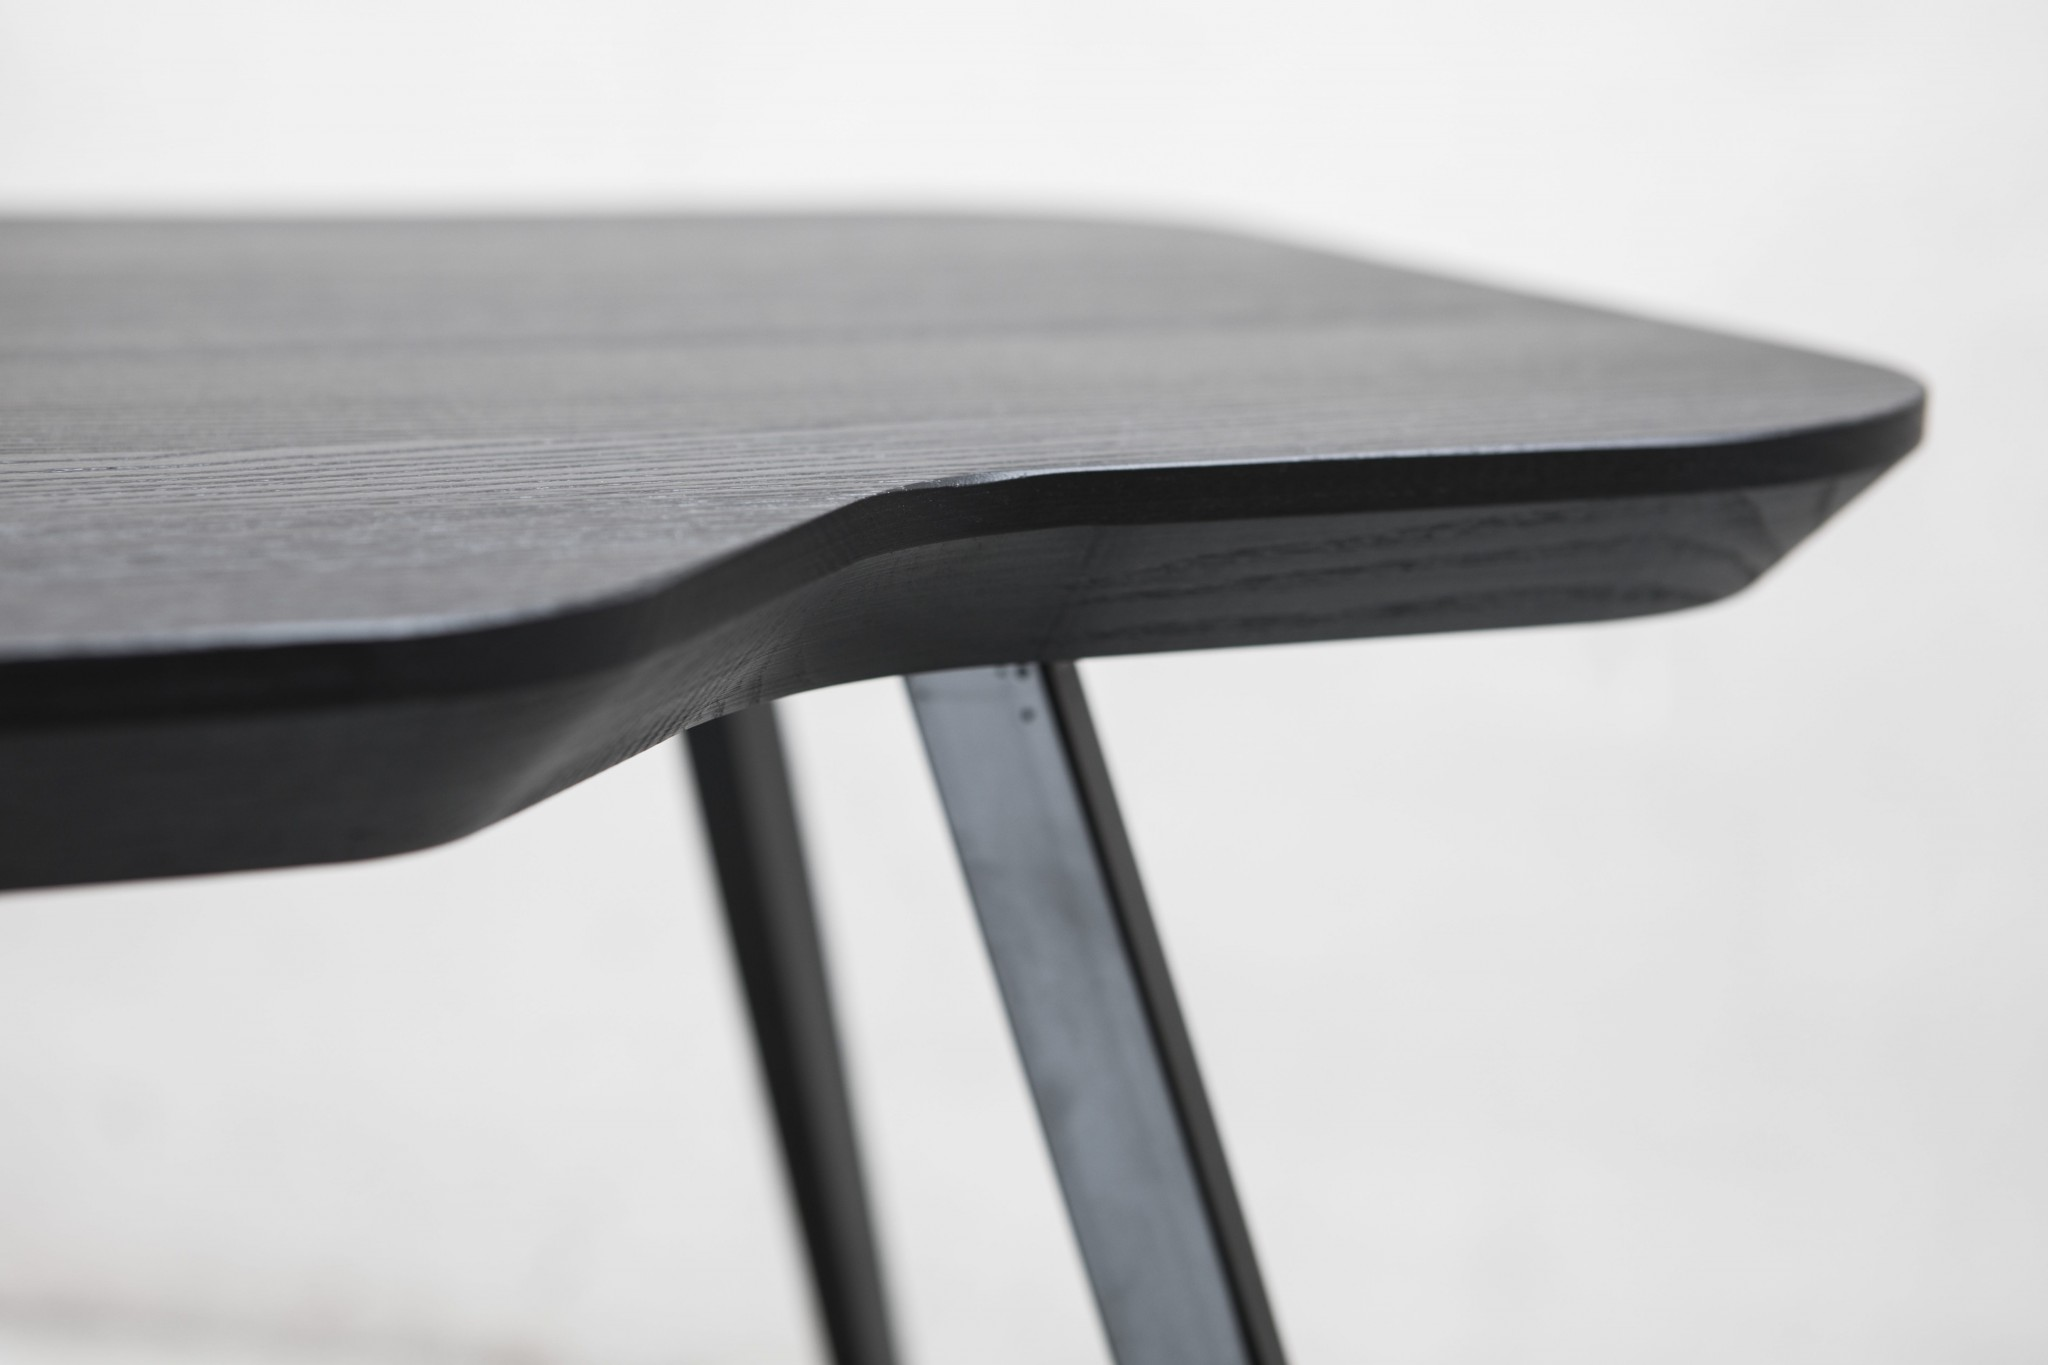 PARTICOLARE AKY SMALL TABLE MET